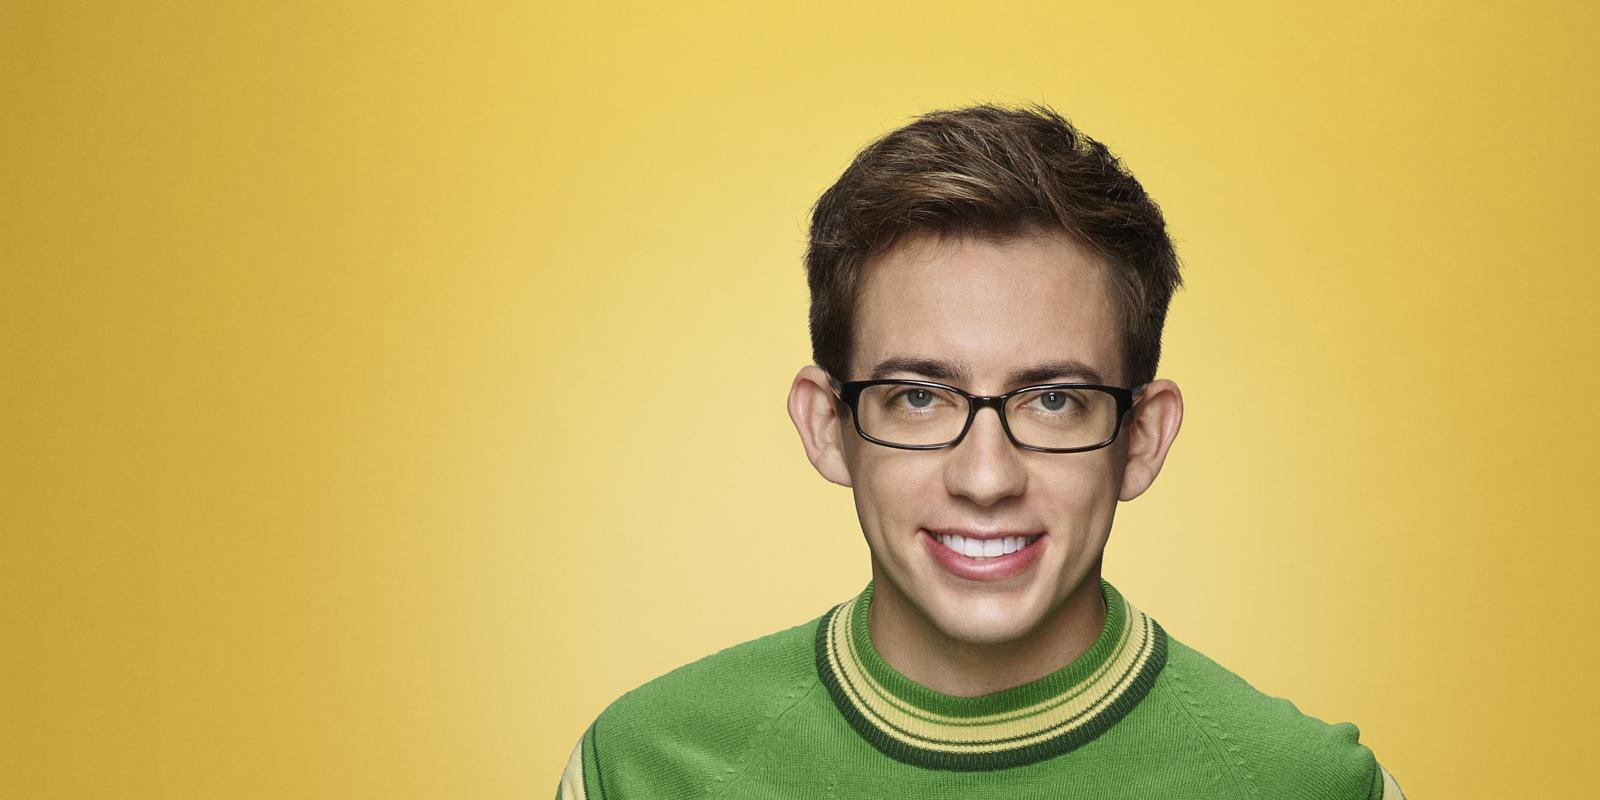 Who Is Artie From Glee Hookup In Real Life